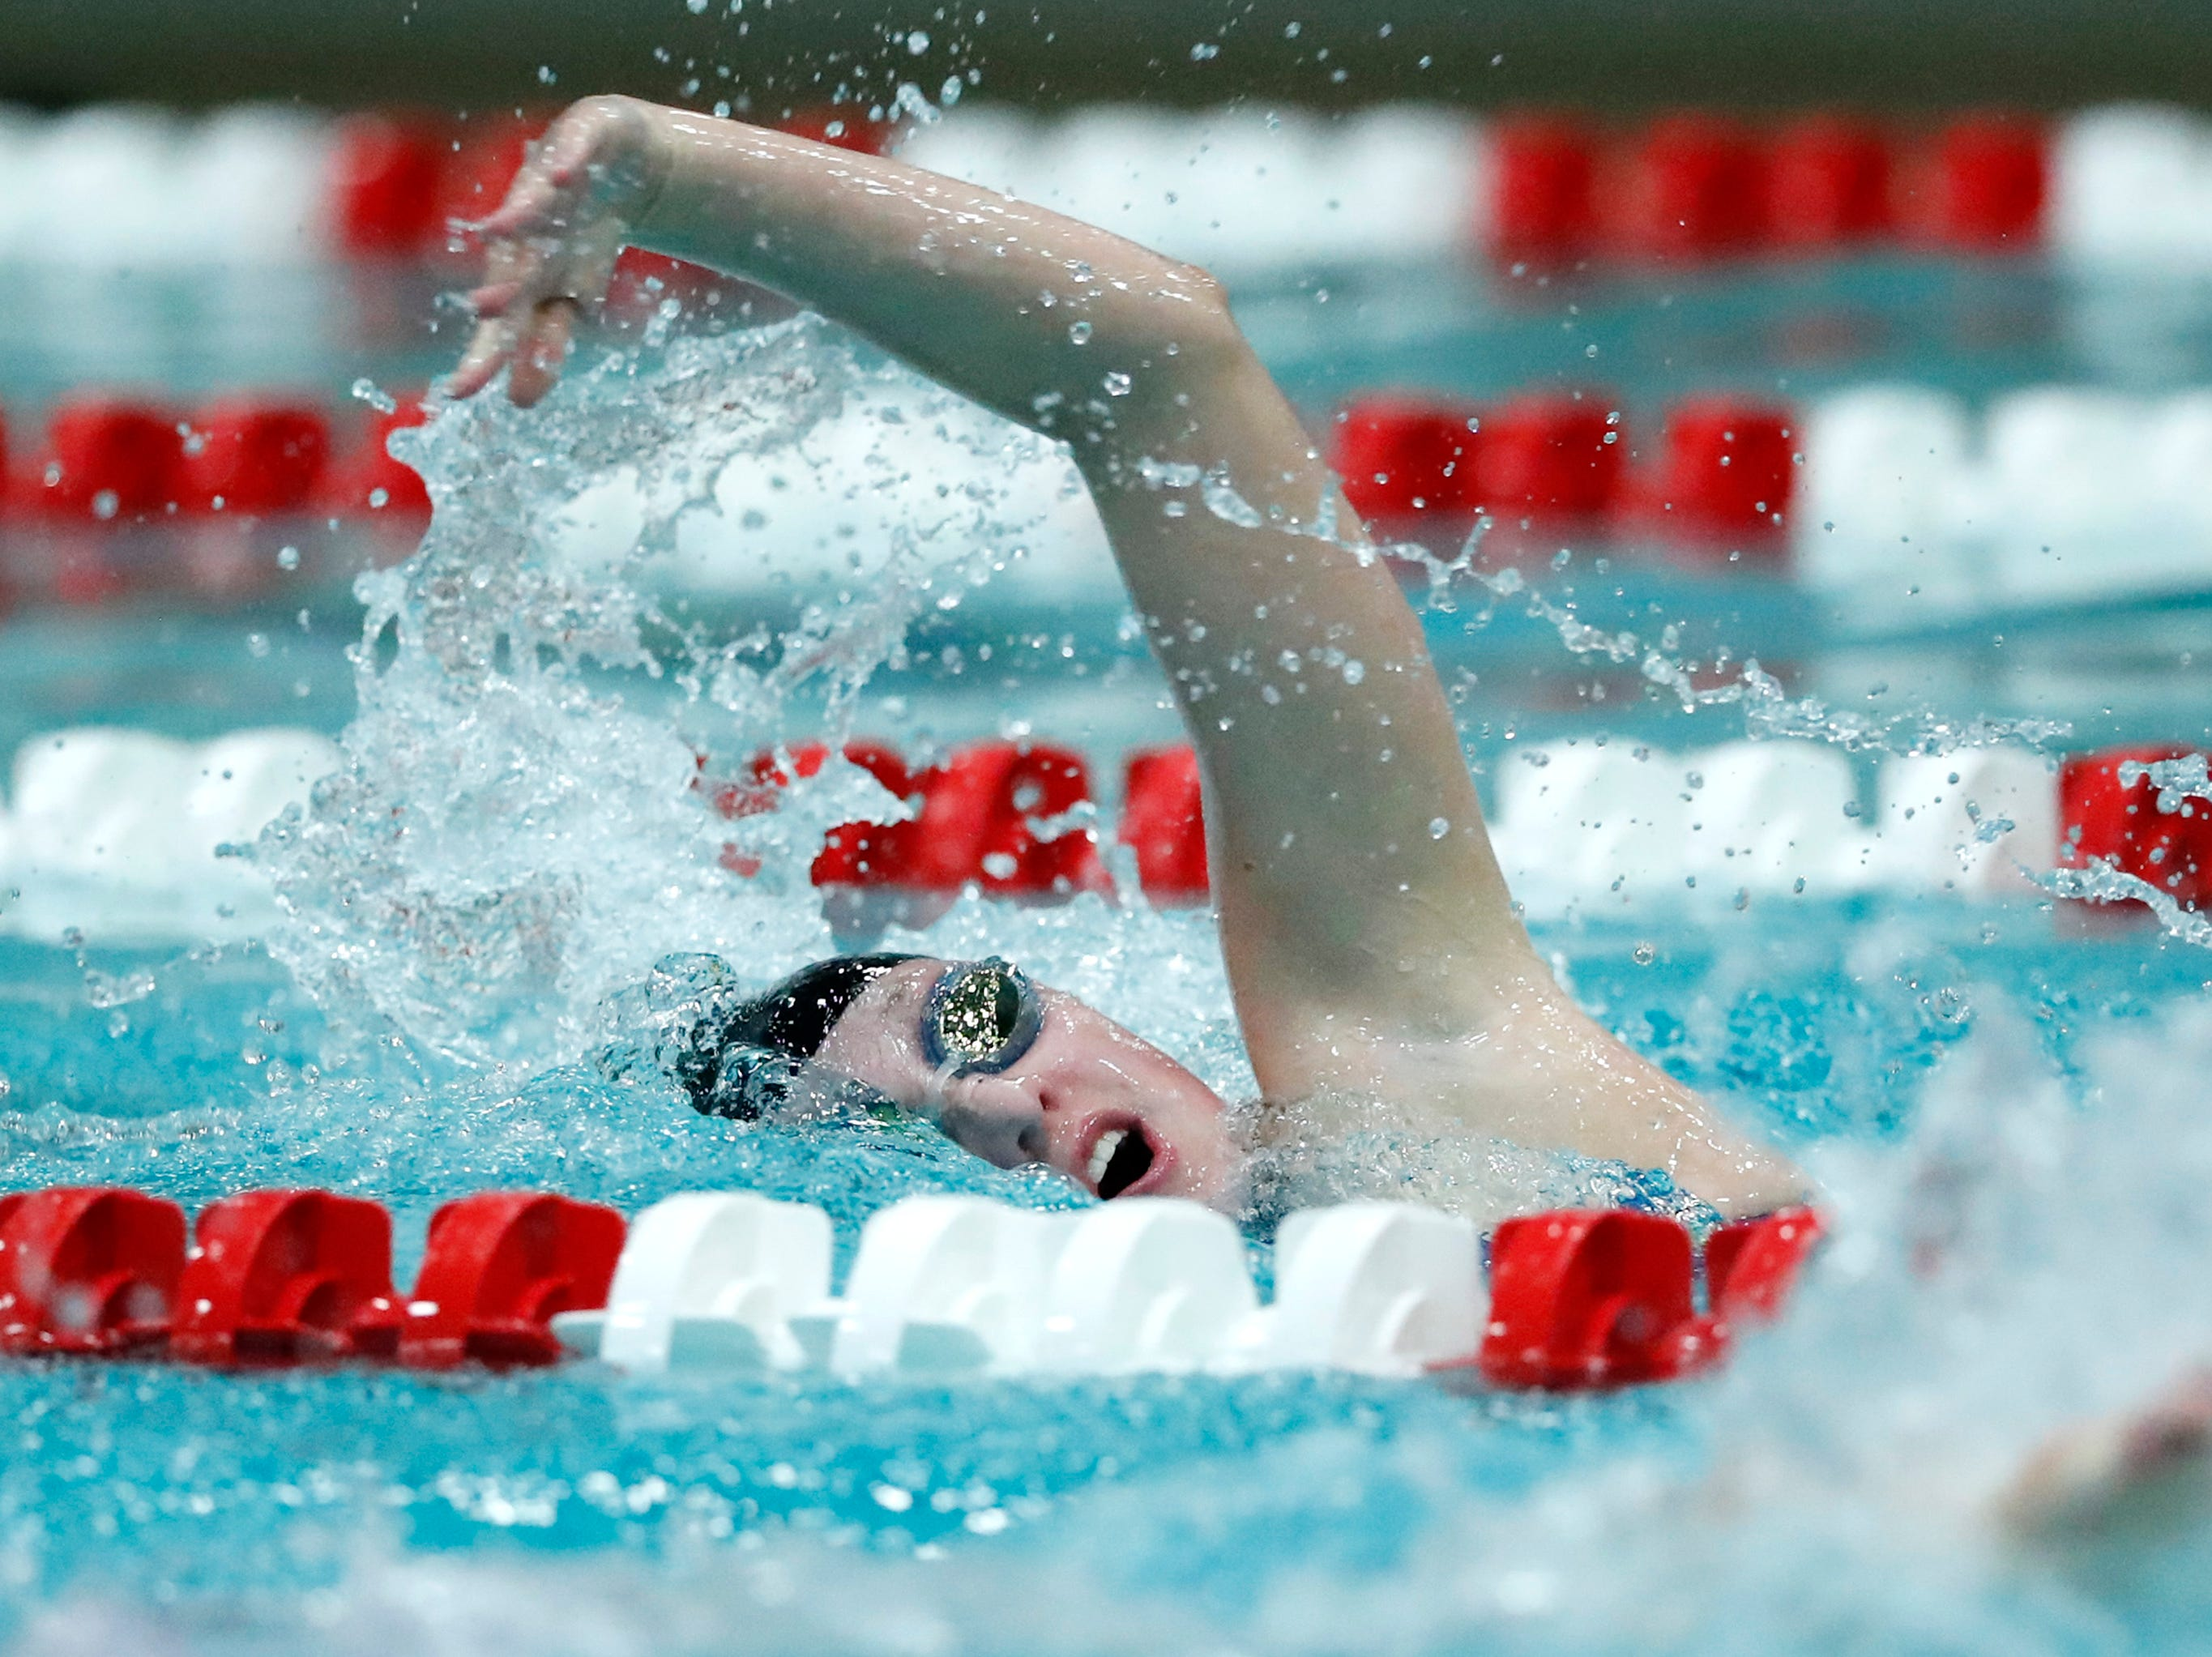 Ashwaubenon's Sydney Pop races in the 200 yard freestyle during the WIAA Division 2 State Swimming and Diving meet Friday, Nov. 9, 2018, at the UW Natatorium in Madison, Wis.